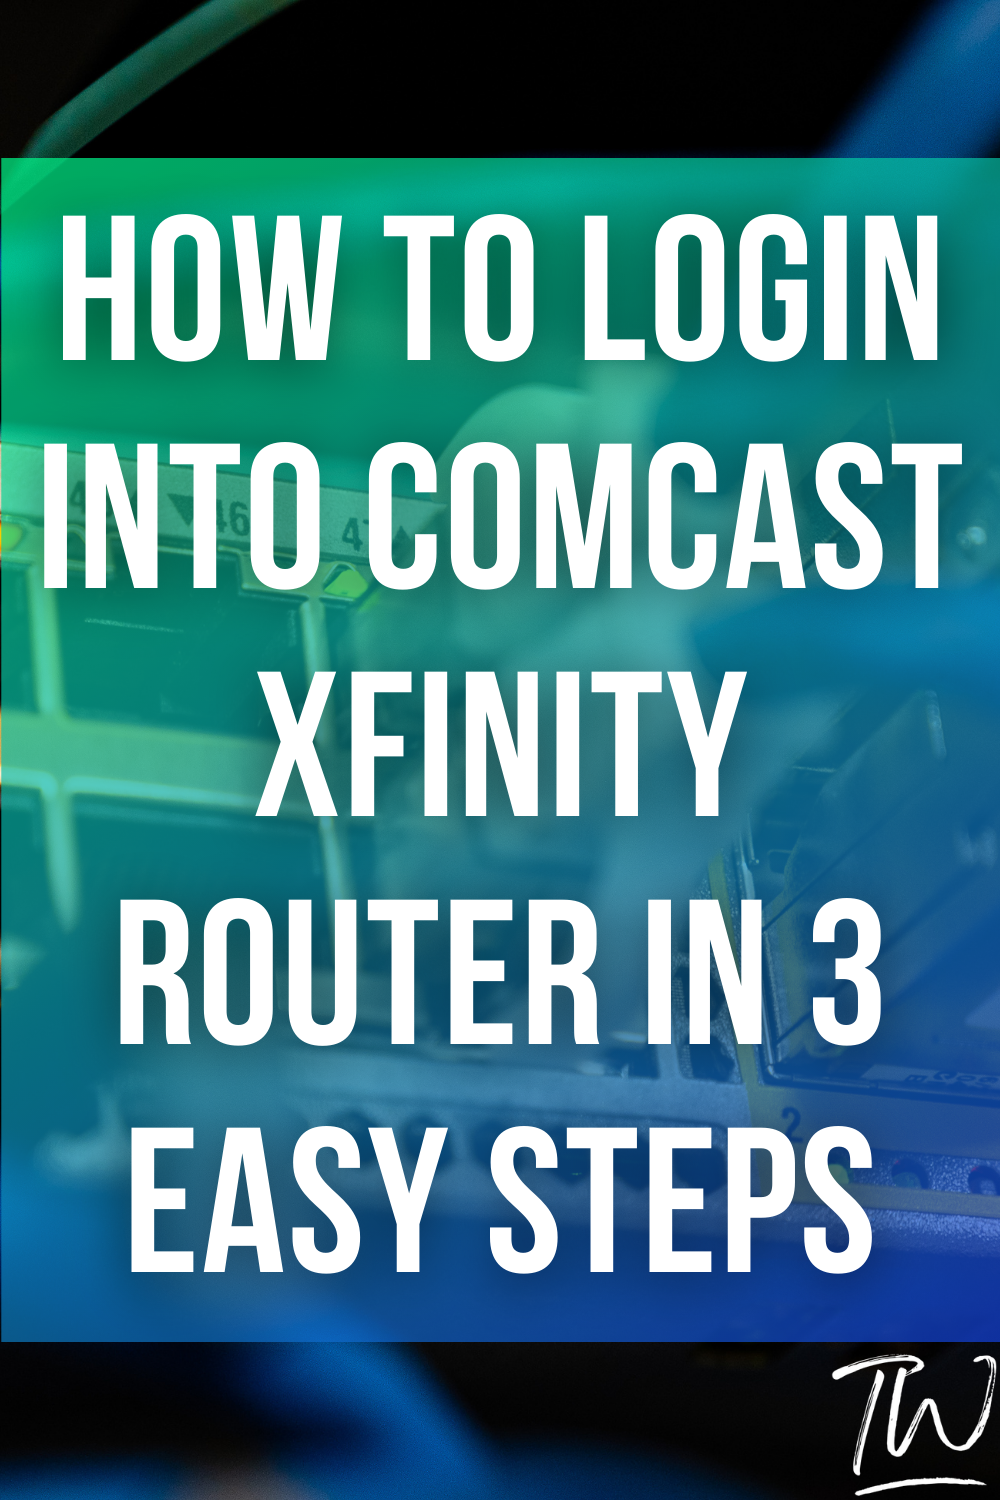 How To Login Into Comcast Xfinity Router In 3 Steps In 2020 Comcast Xfinity Router Comcast